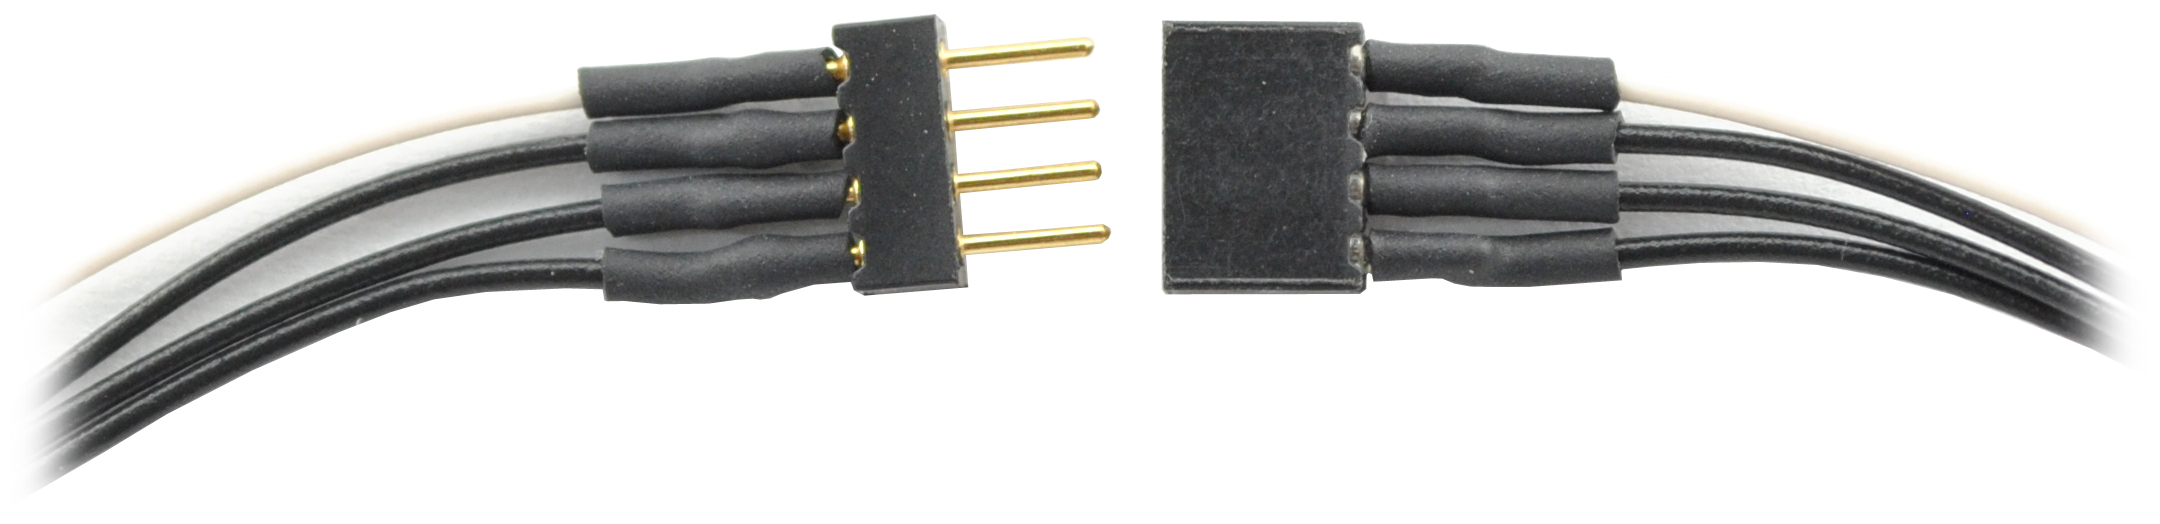 1492 4-Pin Mini Connector 6″ wires – #TCS-1492 – Litchfield Station